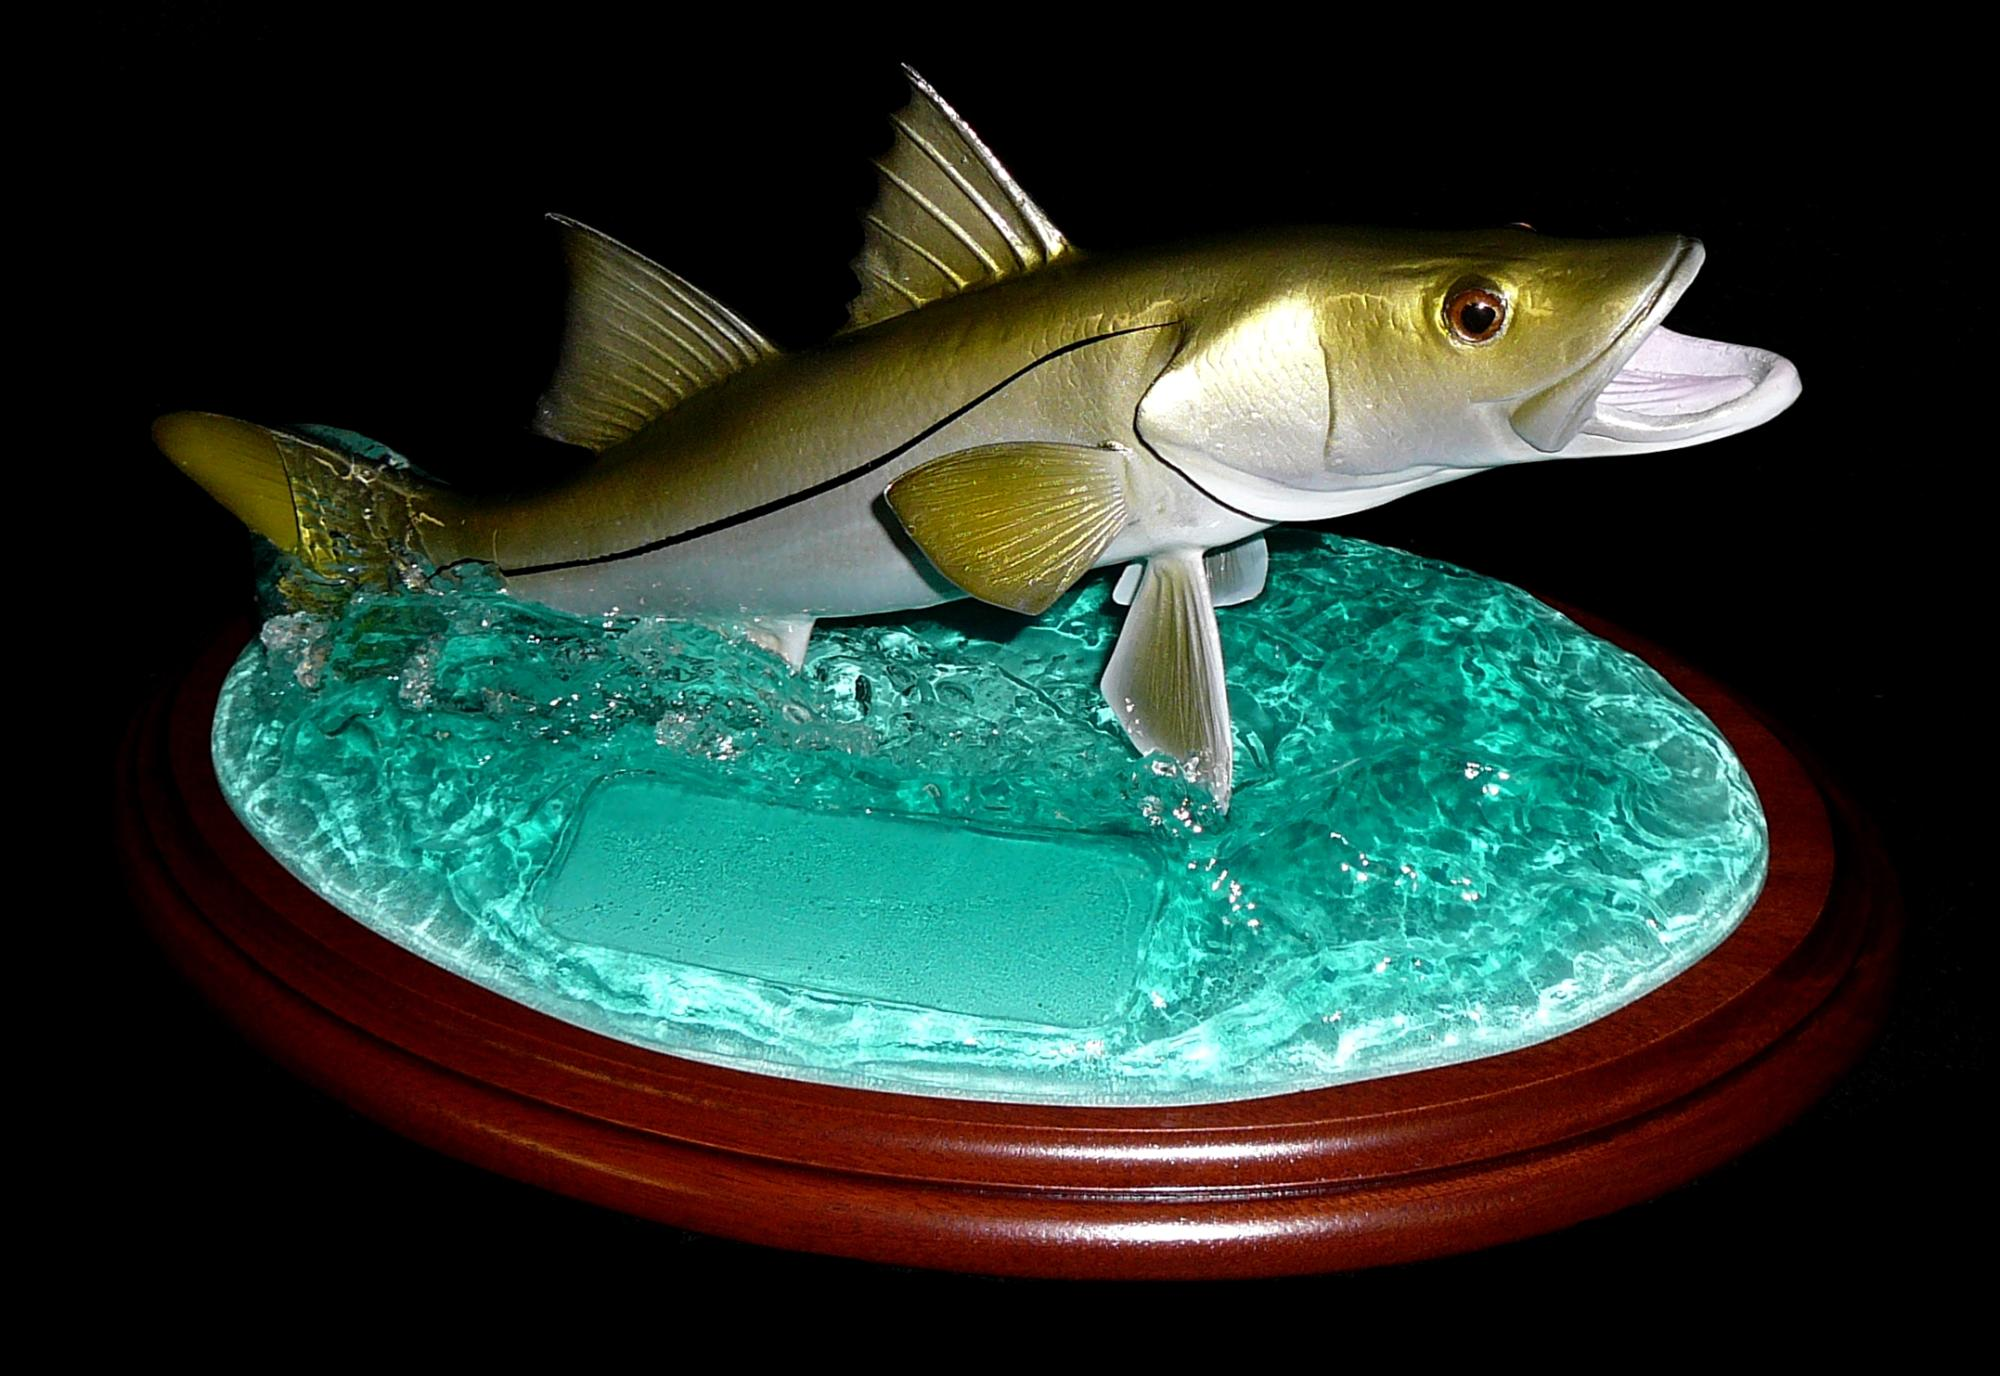 snook_trophy_open_mouth_and_gills.jpg